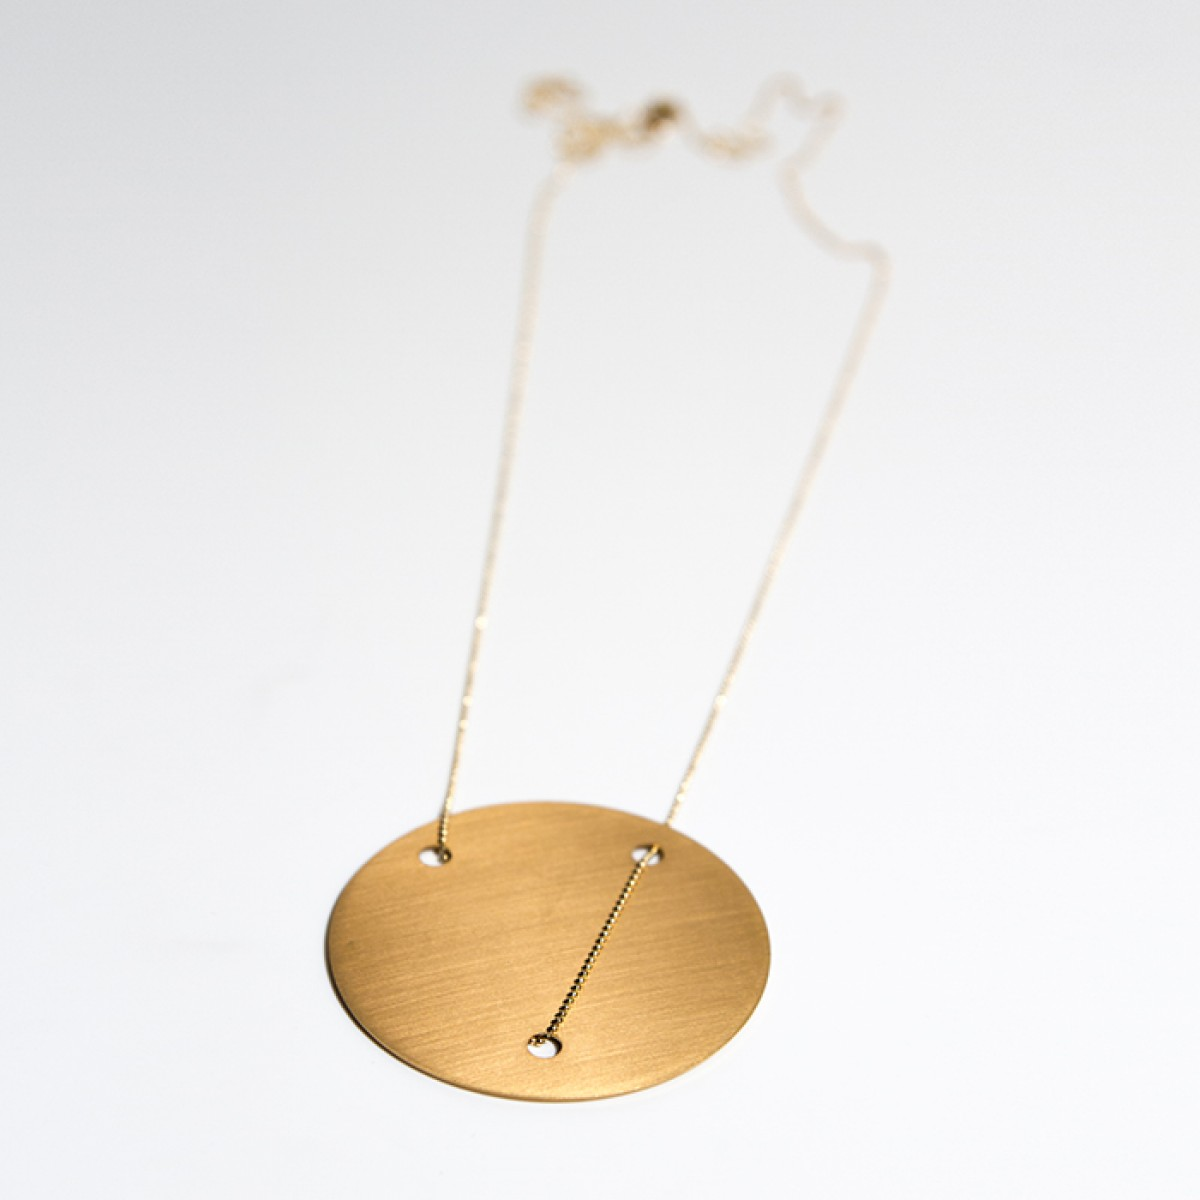 haloa jewellery DOT I gold I Halskette